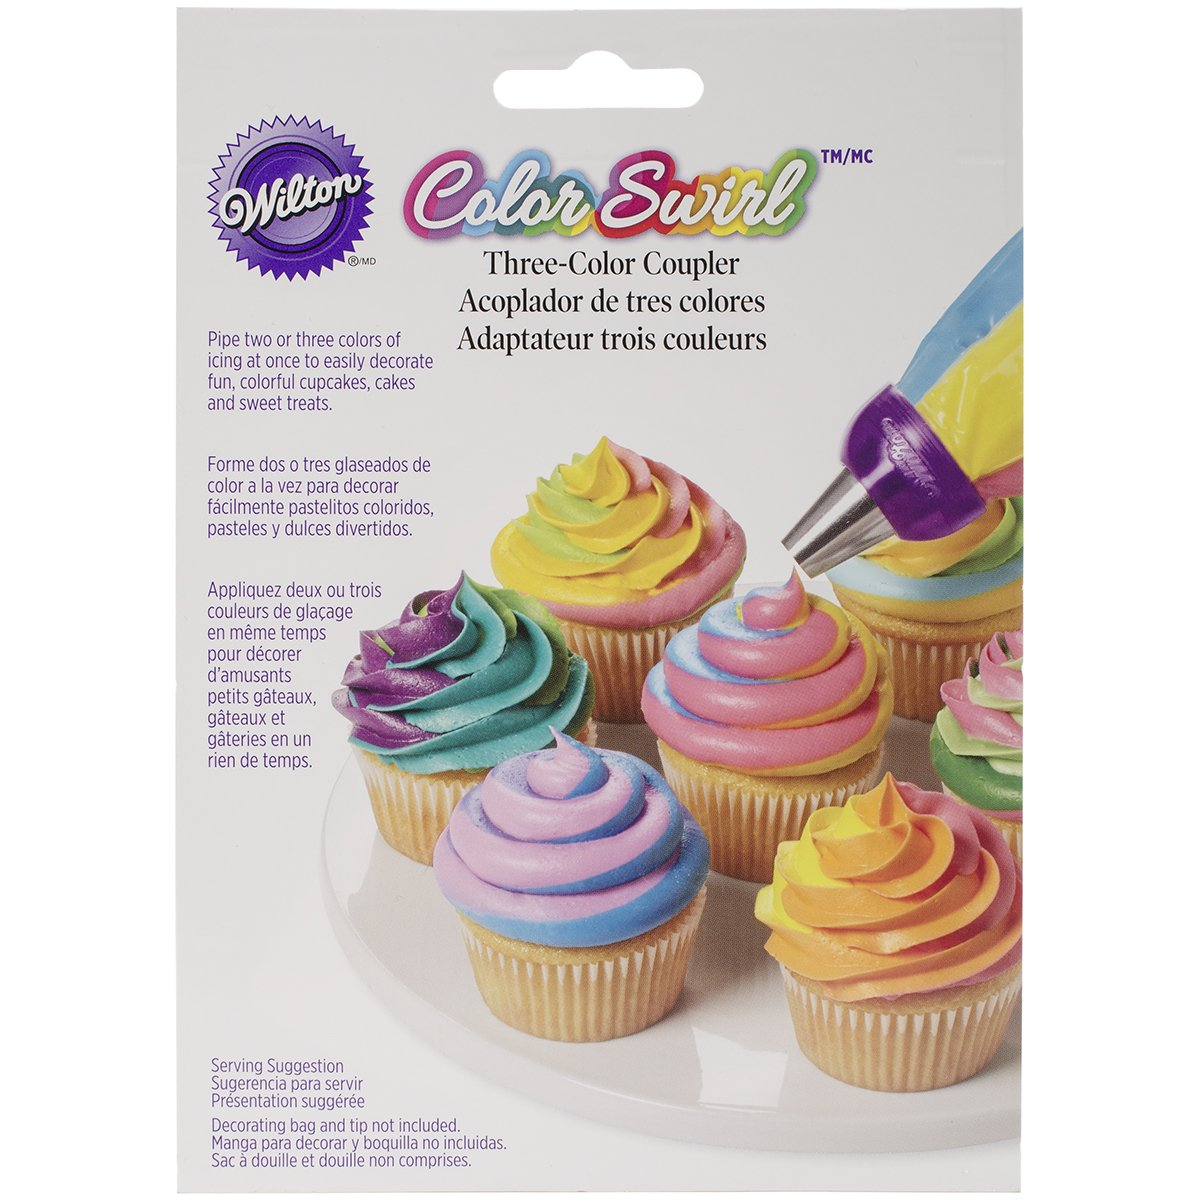 Wilton ColorSwirl 3 Color Coupler, 411-1992 by Wilton (Image #1)